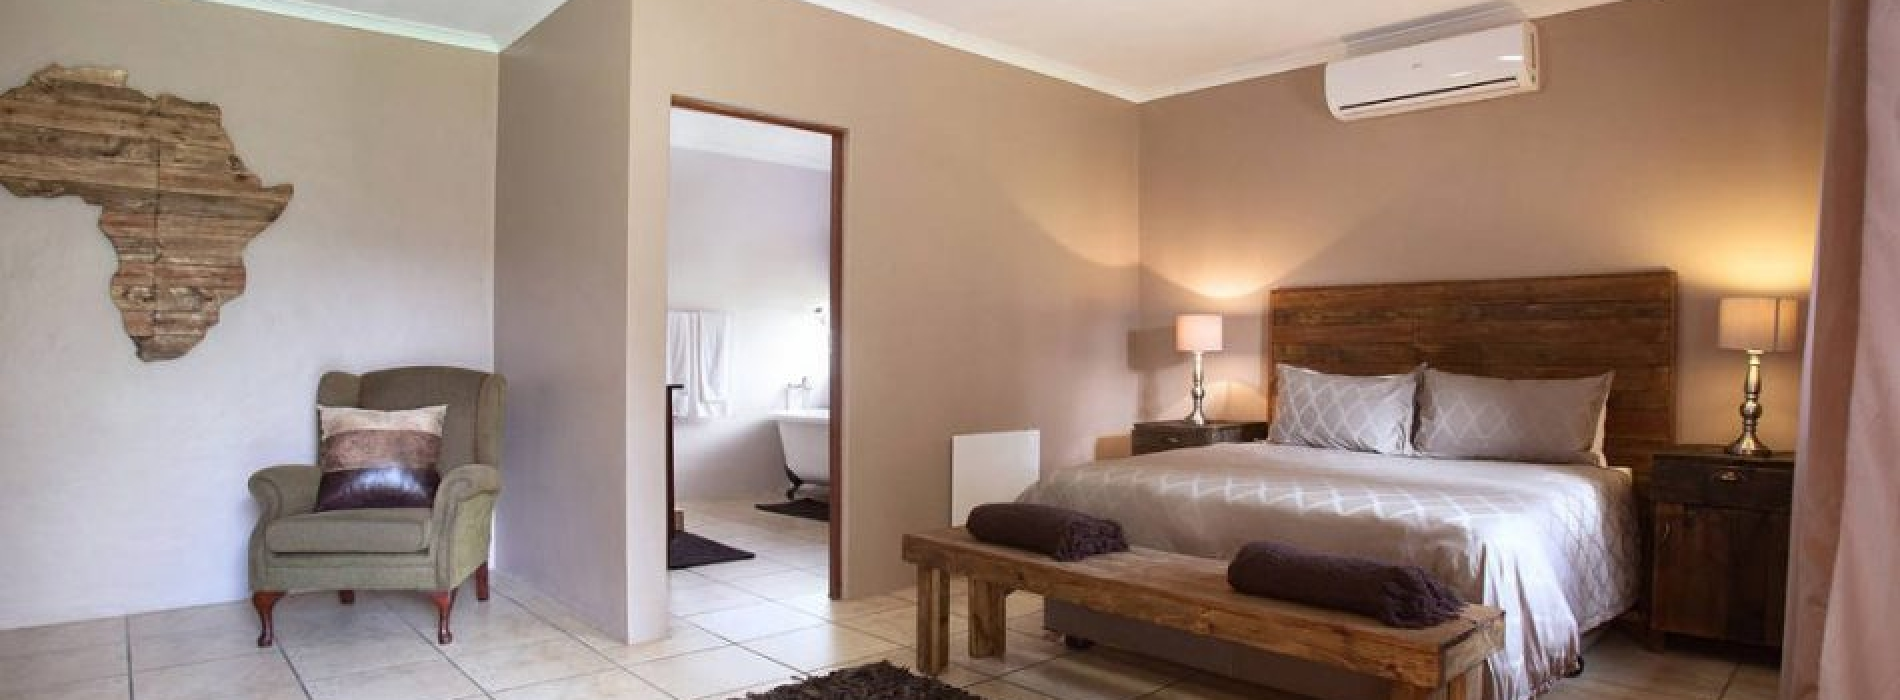 Brown Room Accommodation Option - Tambati Overnight Accommodation